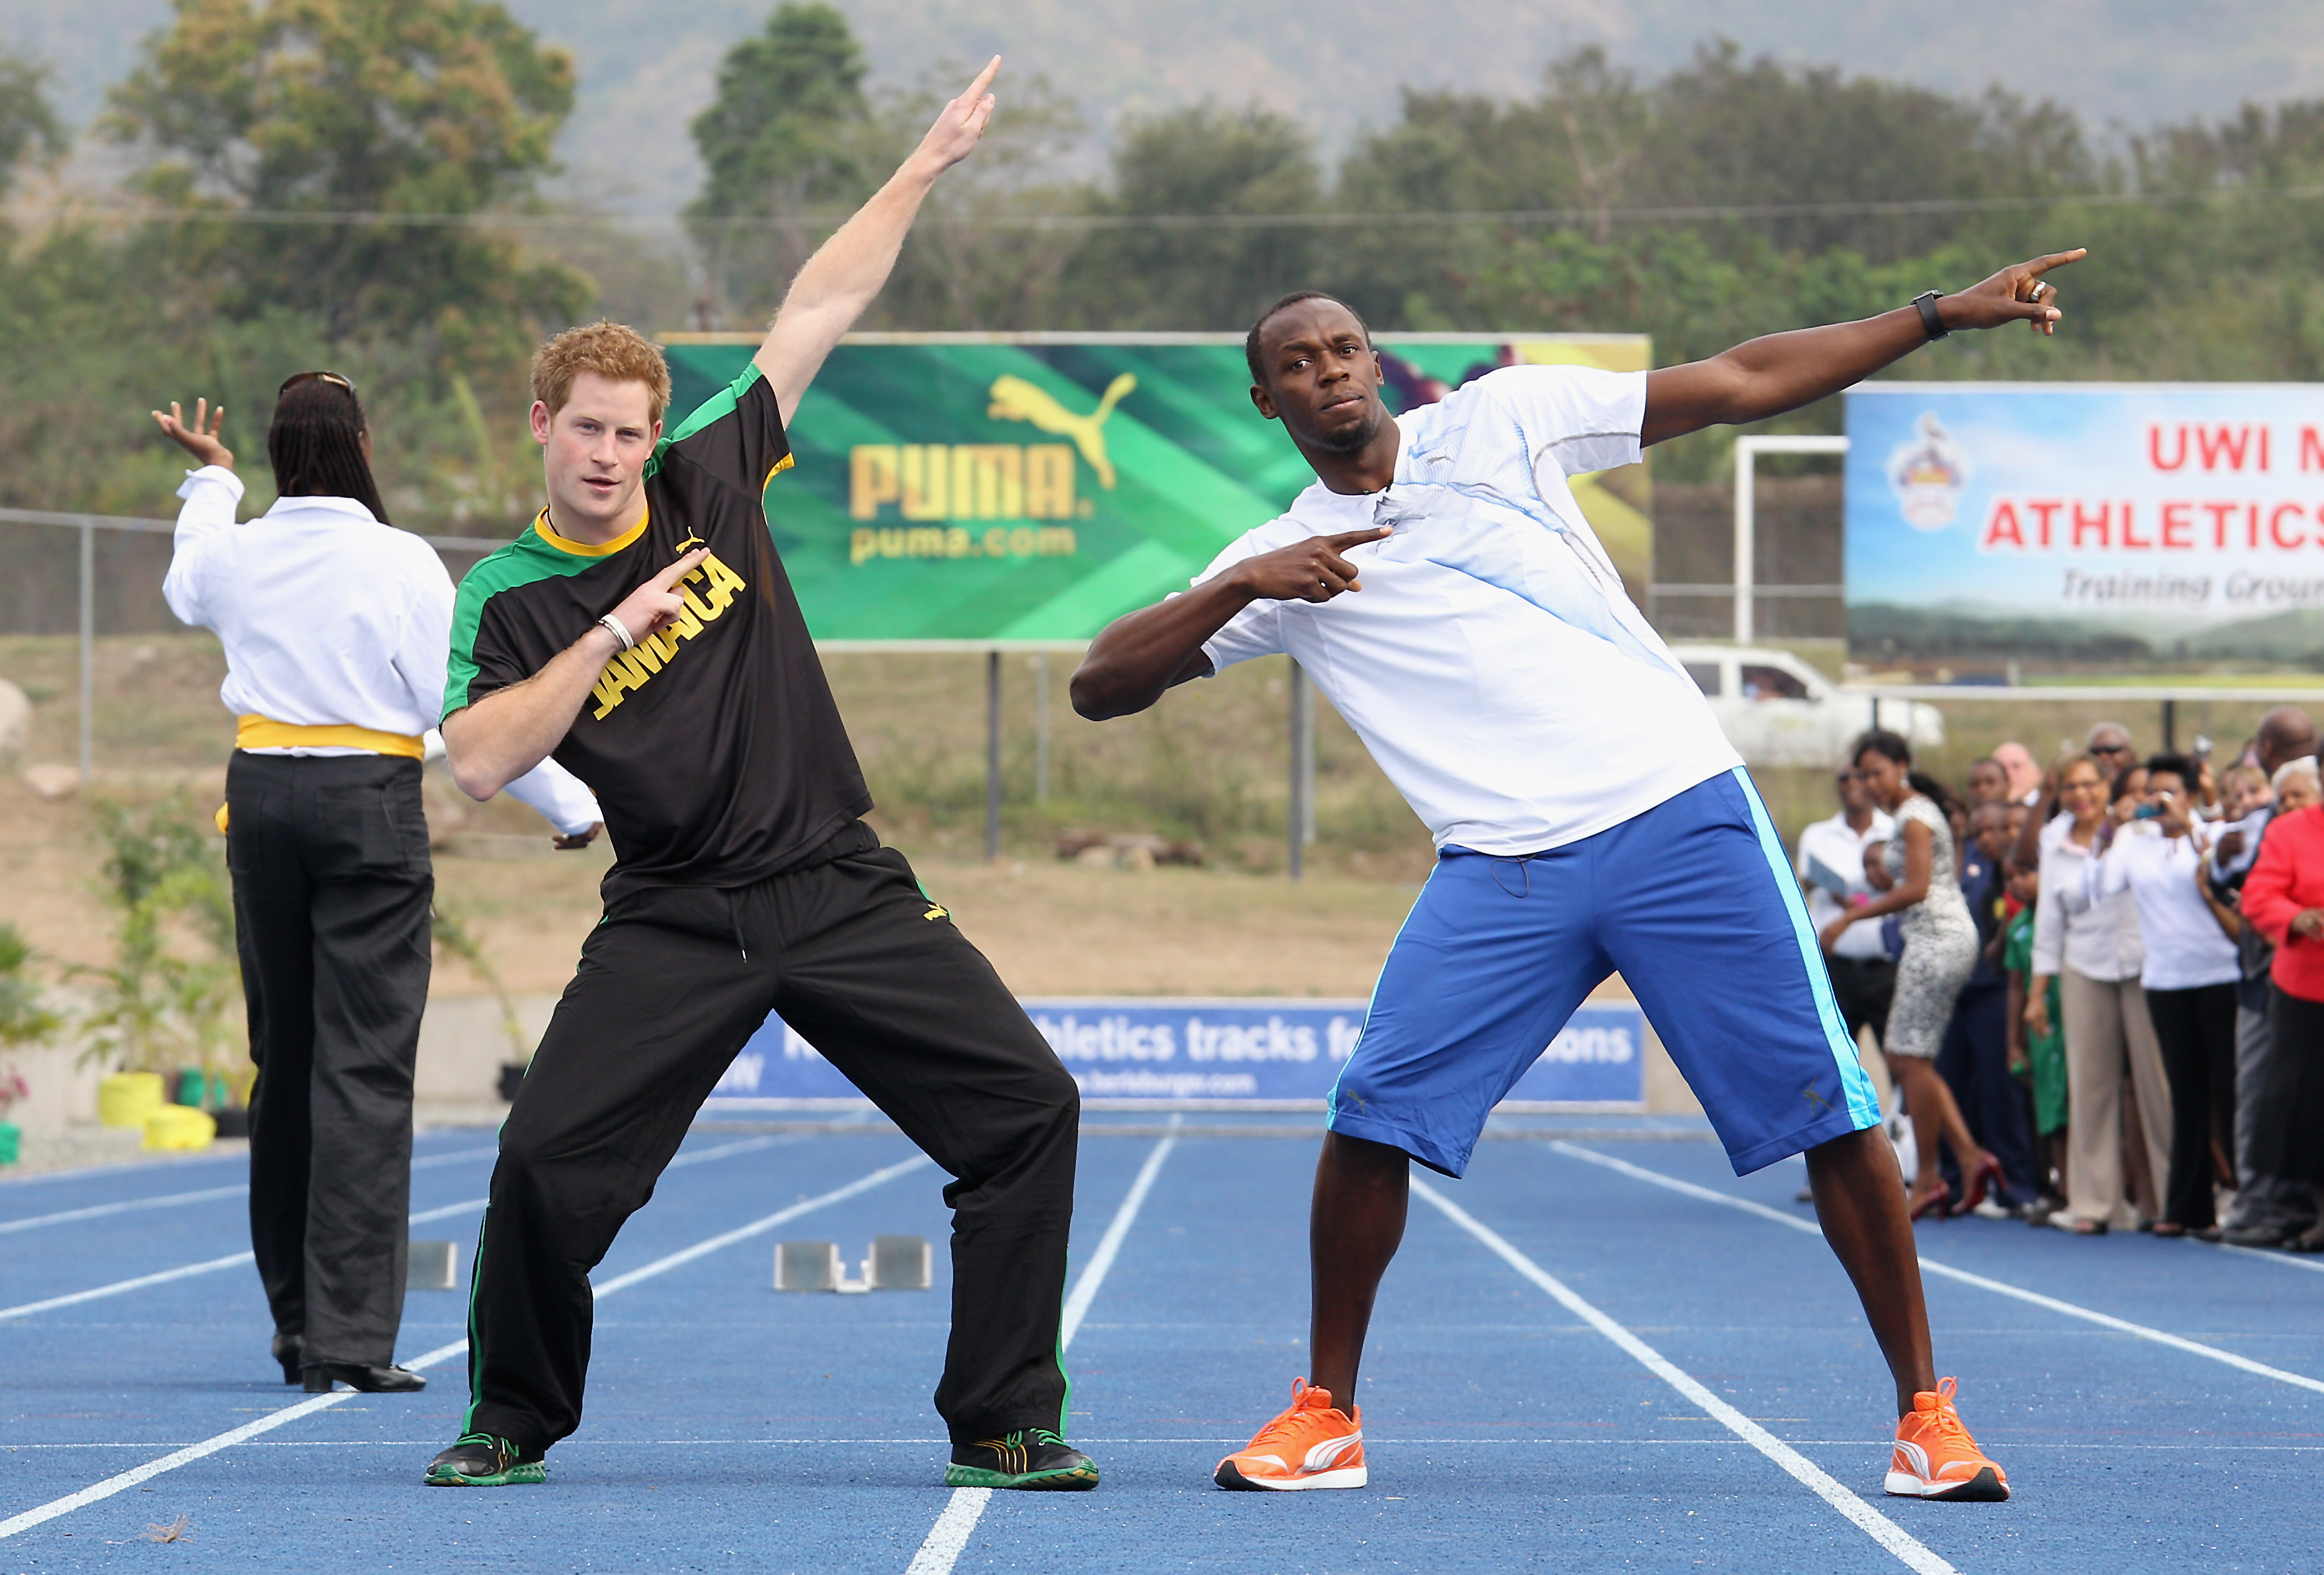 Prince Harry poses with Usain Bolt at the Usain Bolt Track at the University of the West Indies on March 6, 2012 in Kingston, Jamaica.